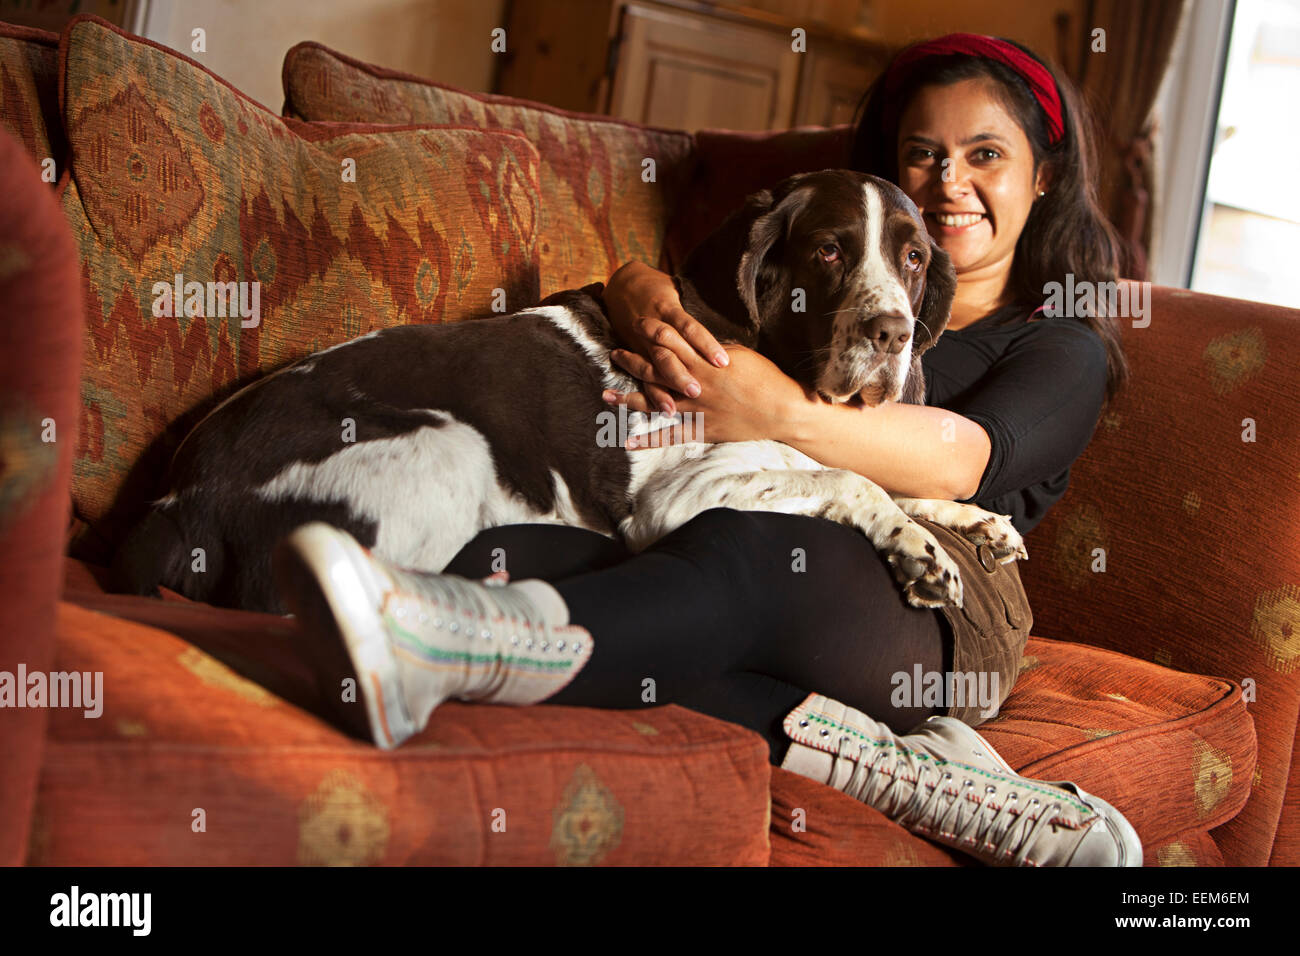 Woman sitting on couch with her dog Stock Photo